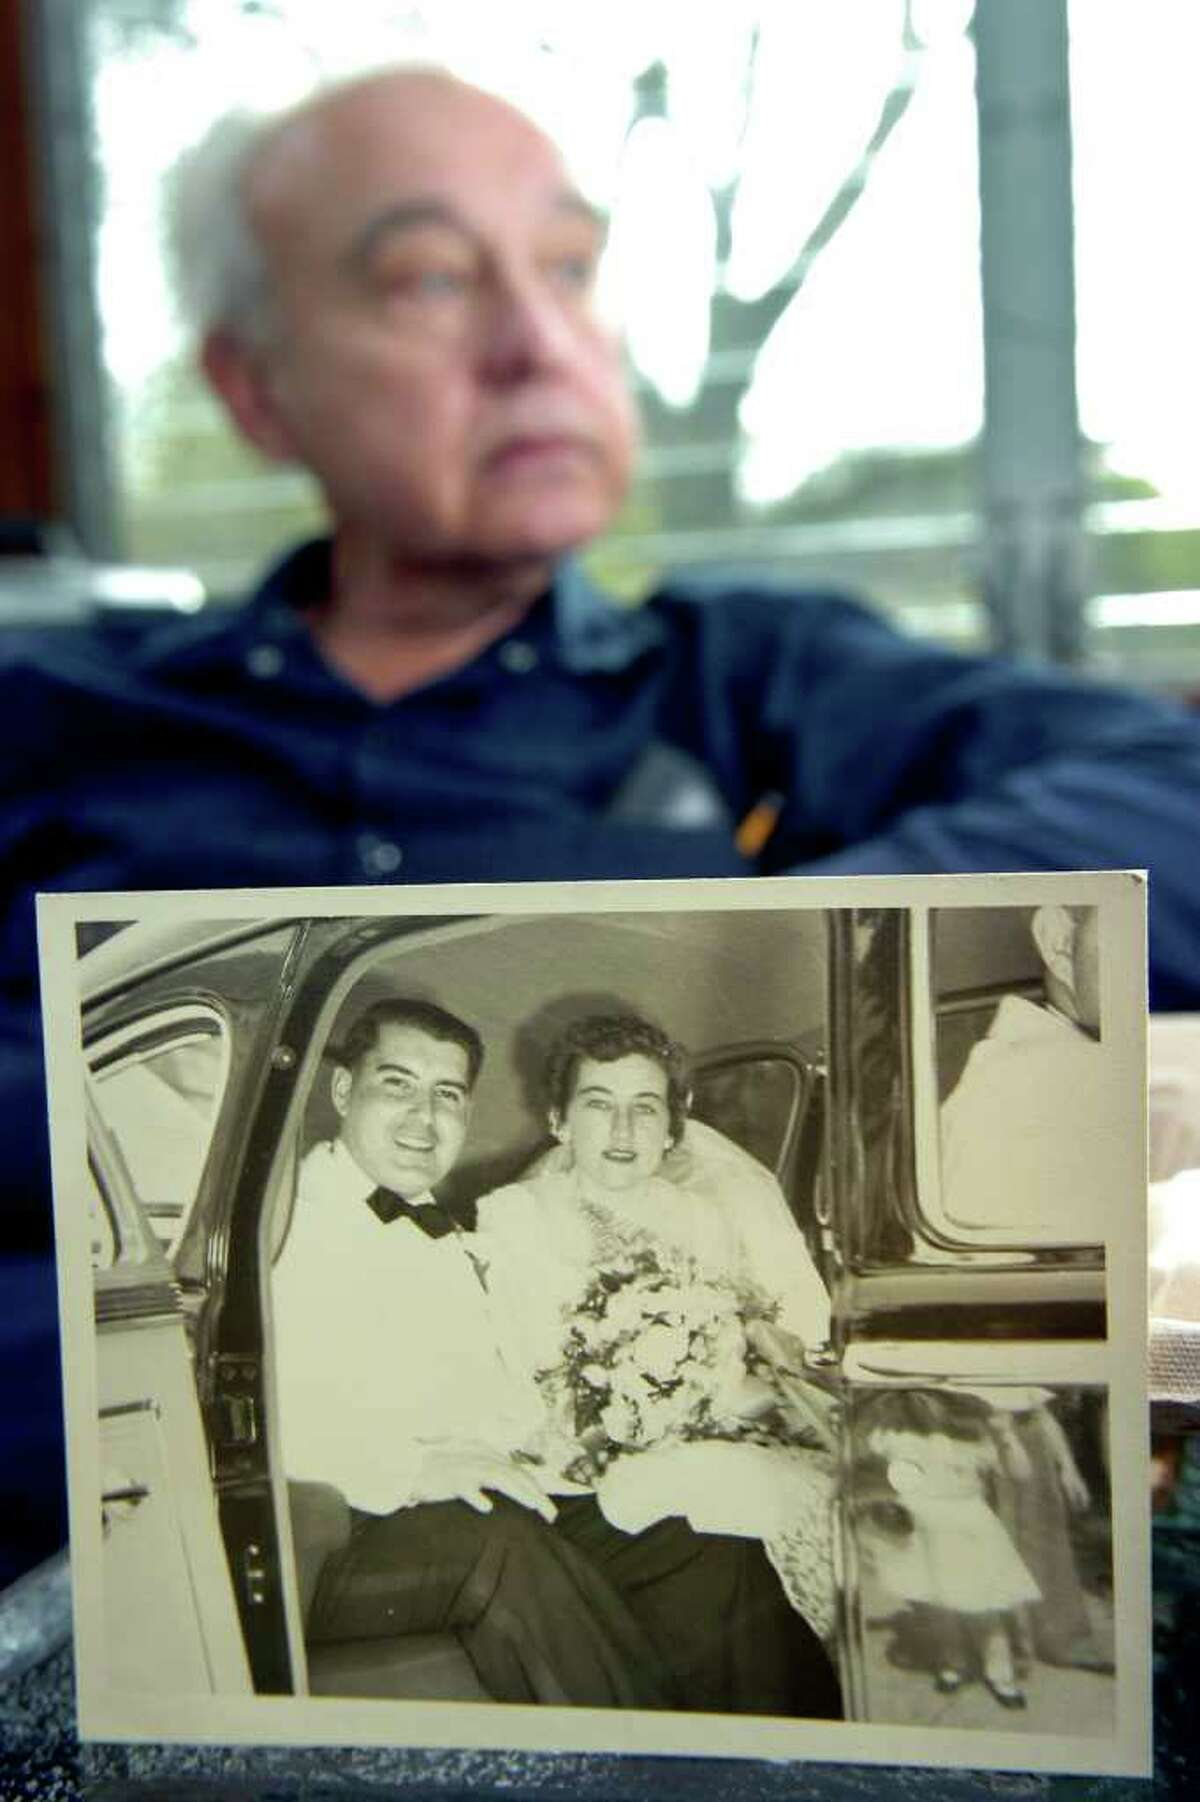 William Jarvis with a 1950 wedding day photo of his parents, George and Ruth Jarvis, as he sits in their Seymour, Conn. home Nov. 3rd, 2011. William's parents both passed away this week, just a day apart. Ruth died Sunday, and George died on Monday.